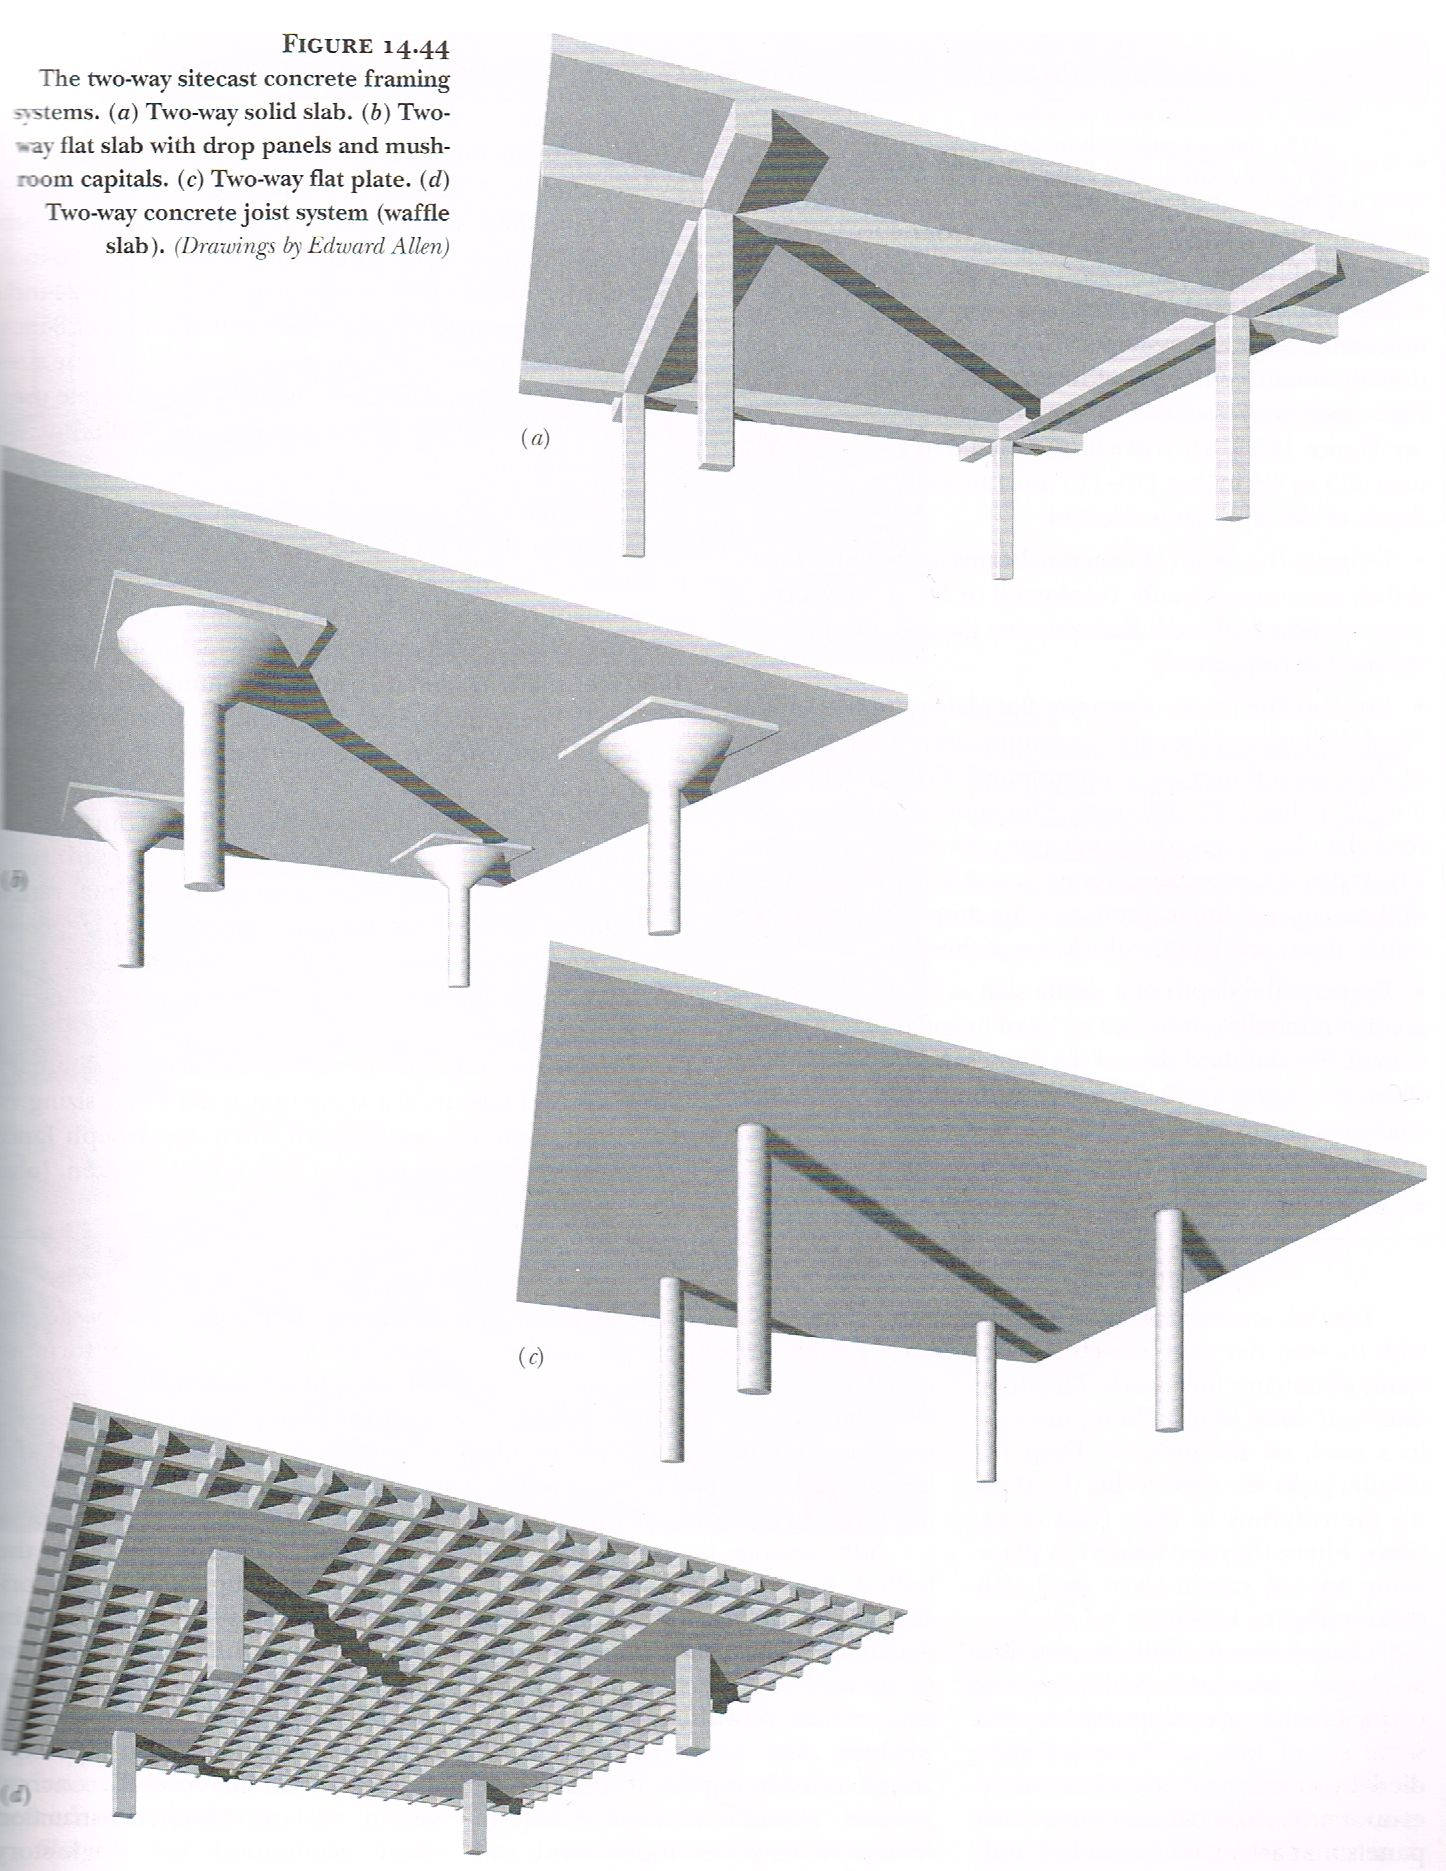 Tow Way Concrete Slab Systems Fundamentals Of Building Construction Book Structure Design Construction Design Architecture Building Design